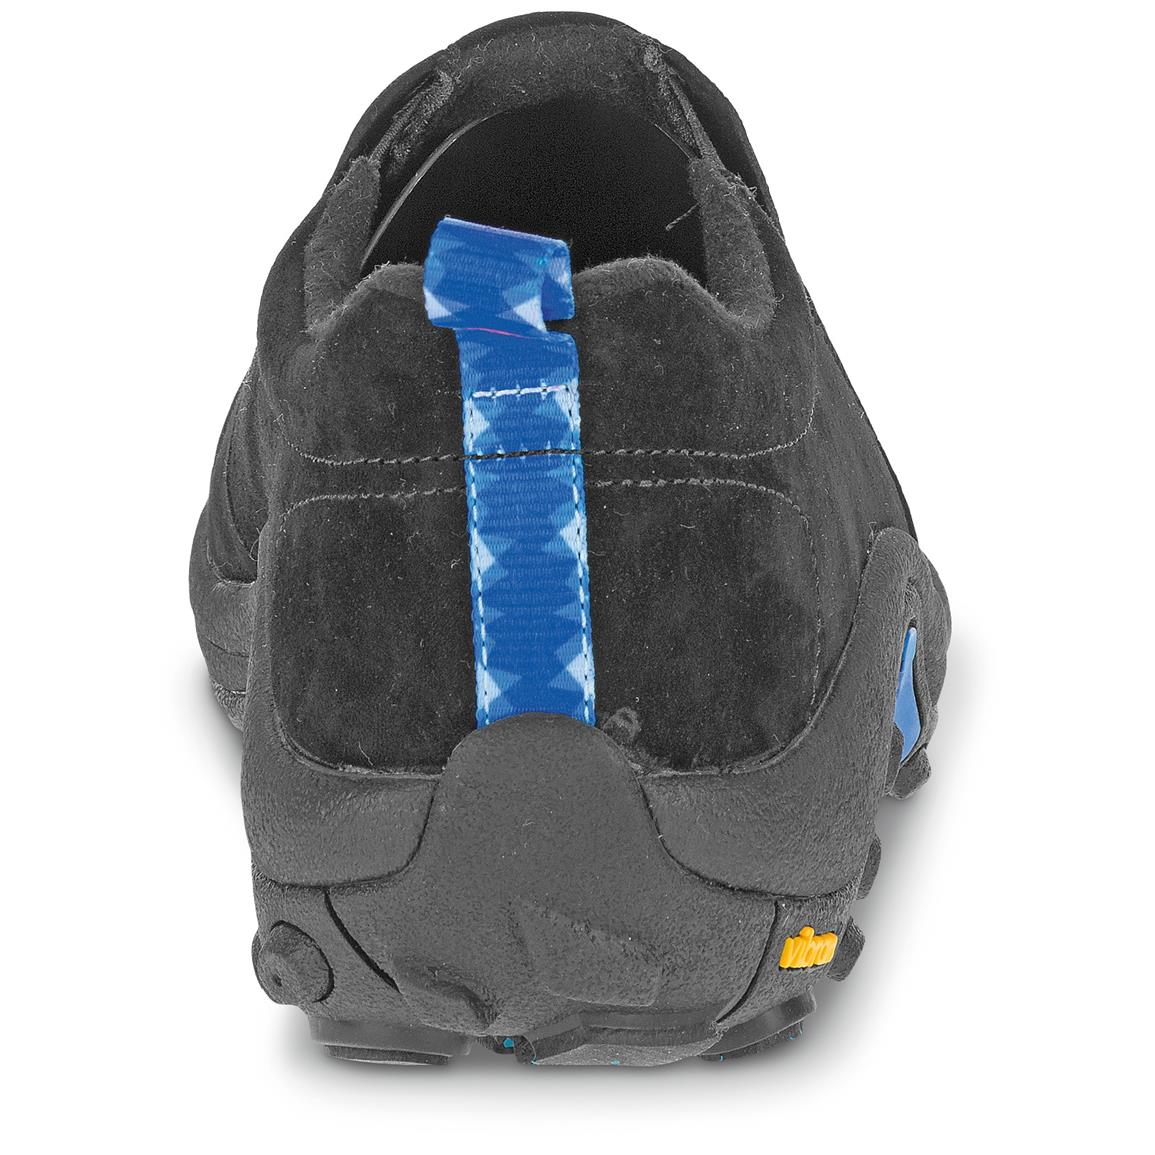 Merrell® Air Cushion in the heel for shock-absorbing comfort